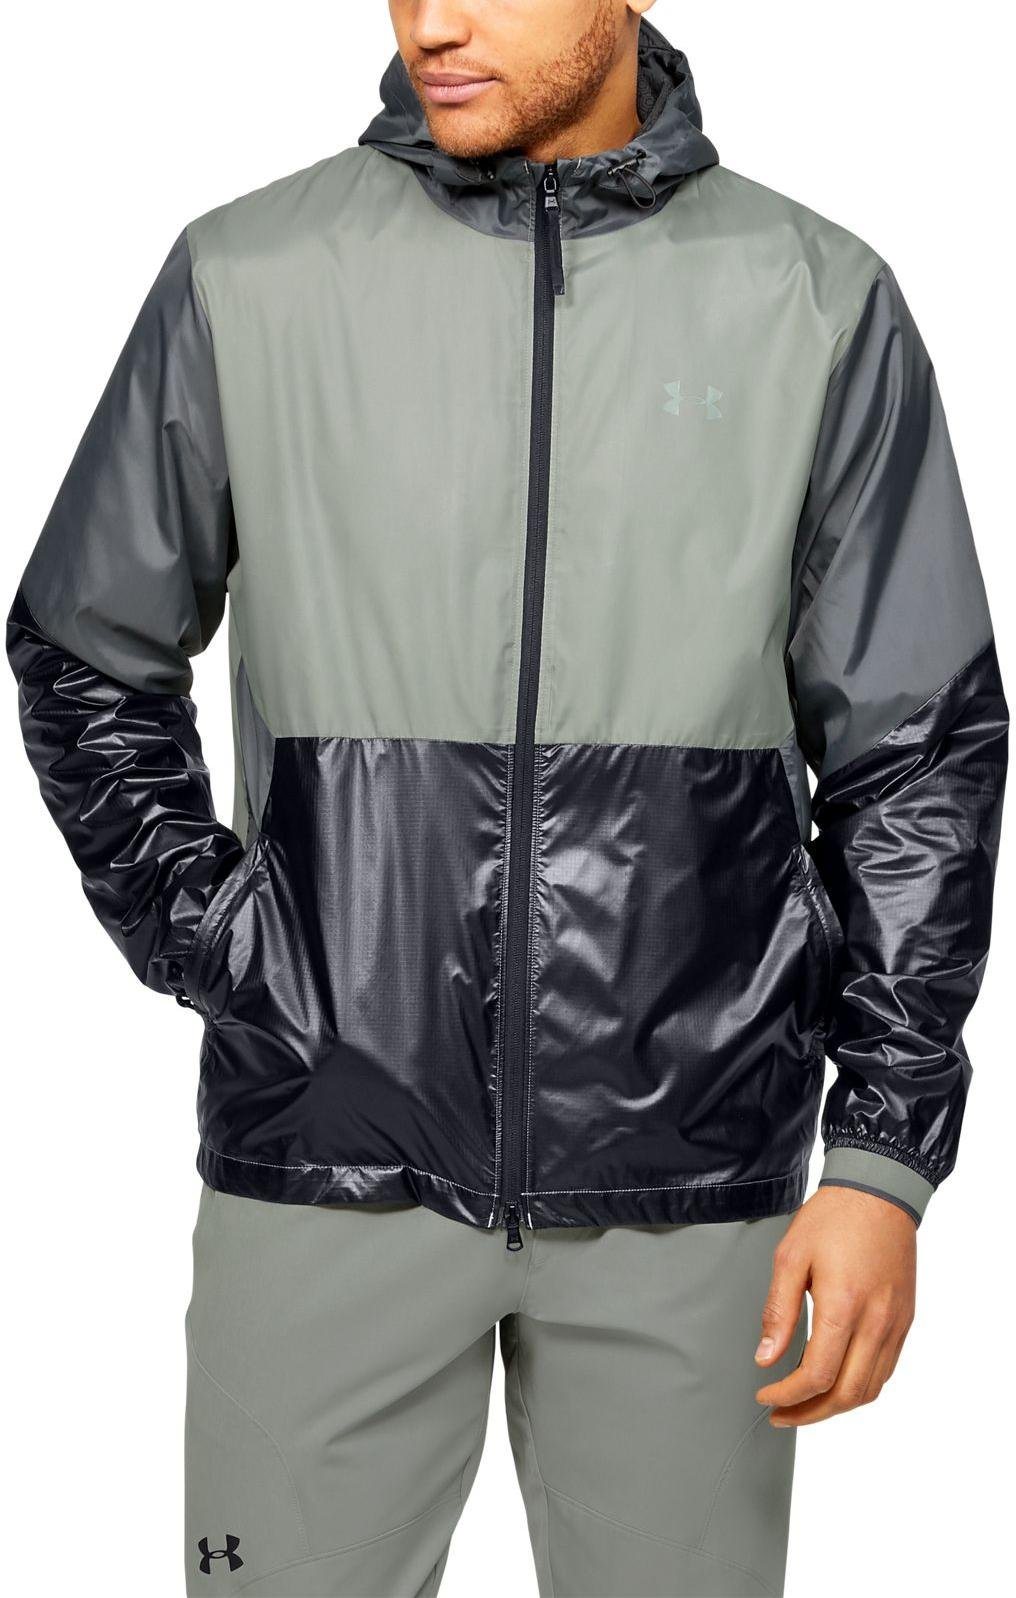 Bunda s kapucňou Under Armour Under Armour RECOVER LEGACY WINDBREAKER